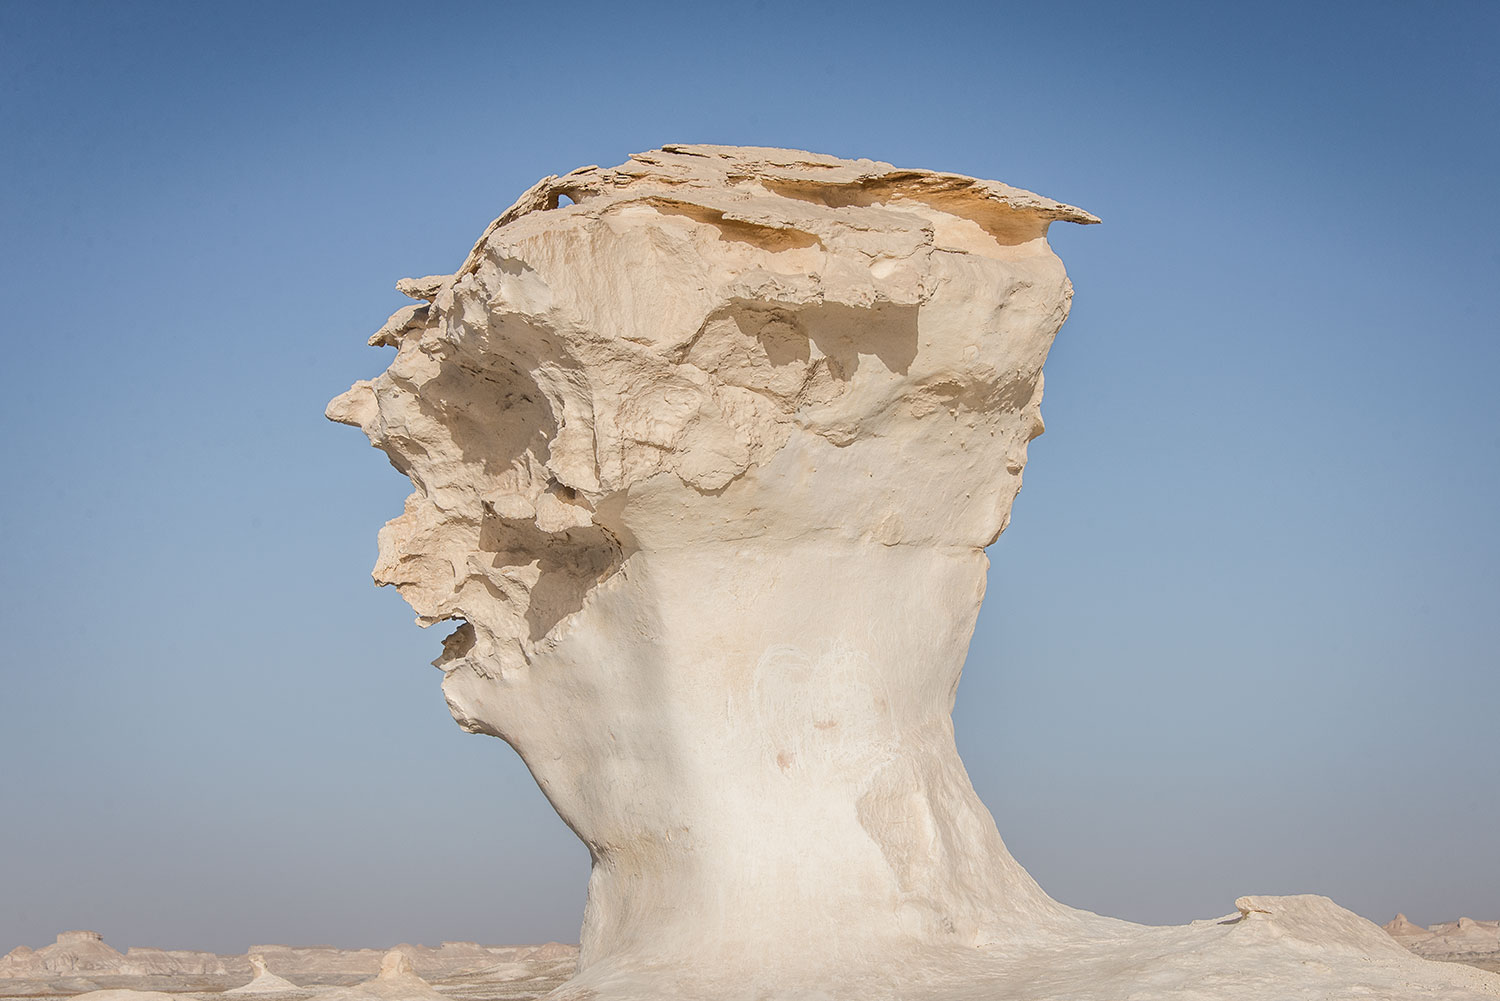 The bizarre rock formation that looks like a human head!